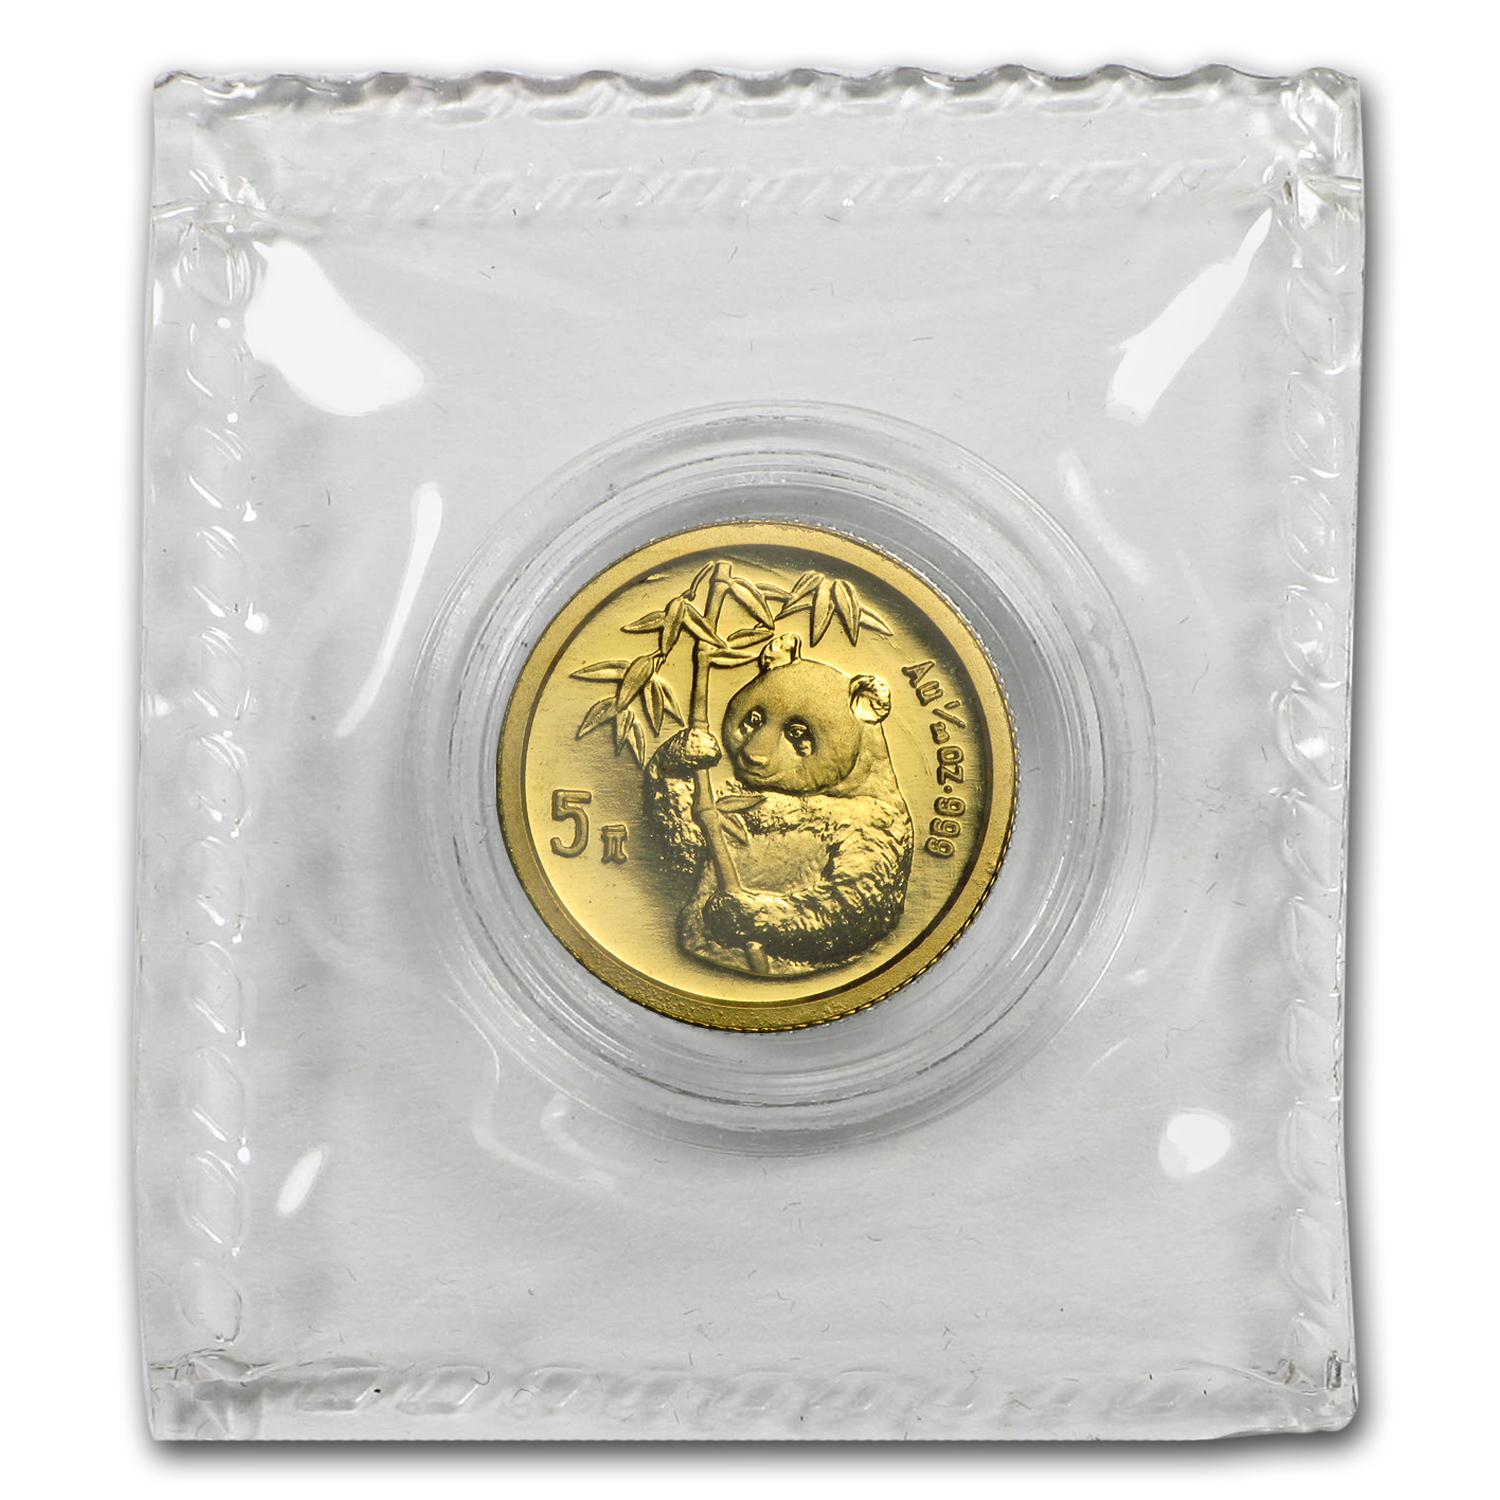 1995 China 1/20 oz Gold Panda Small Date BU (Sealed)